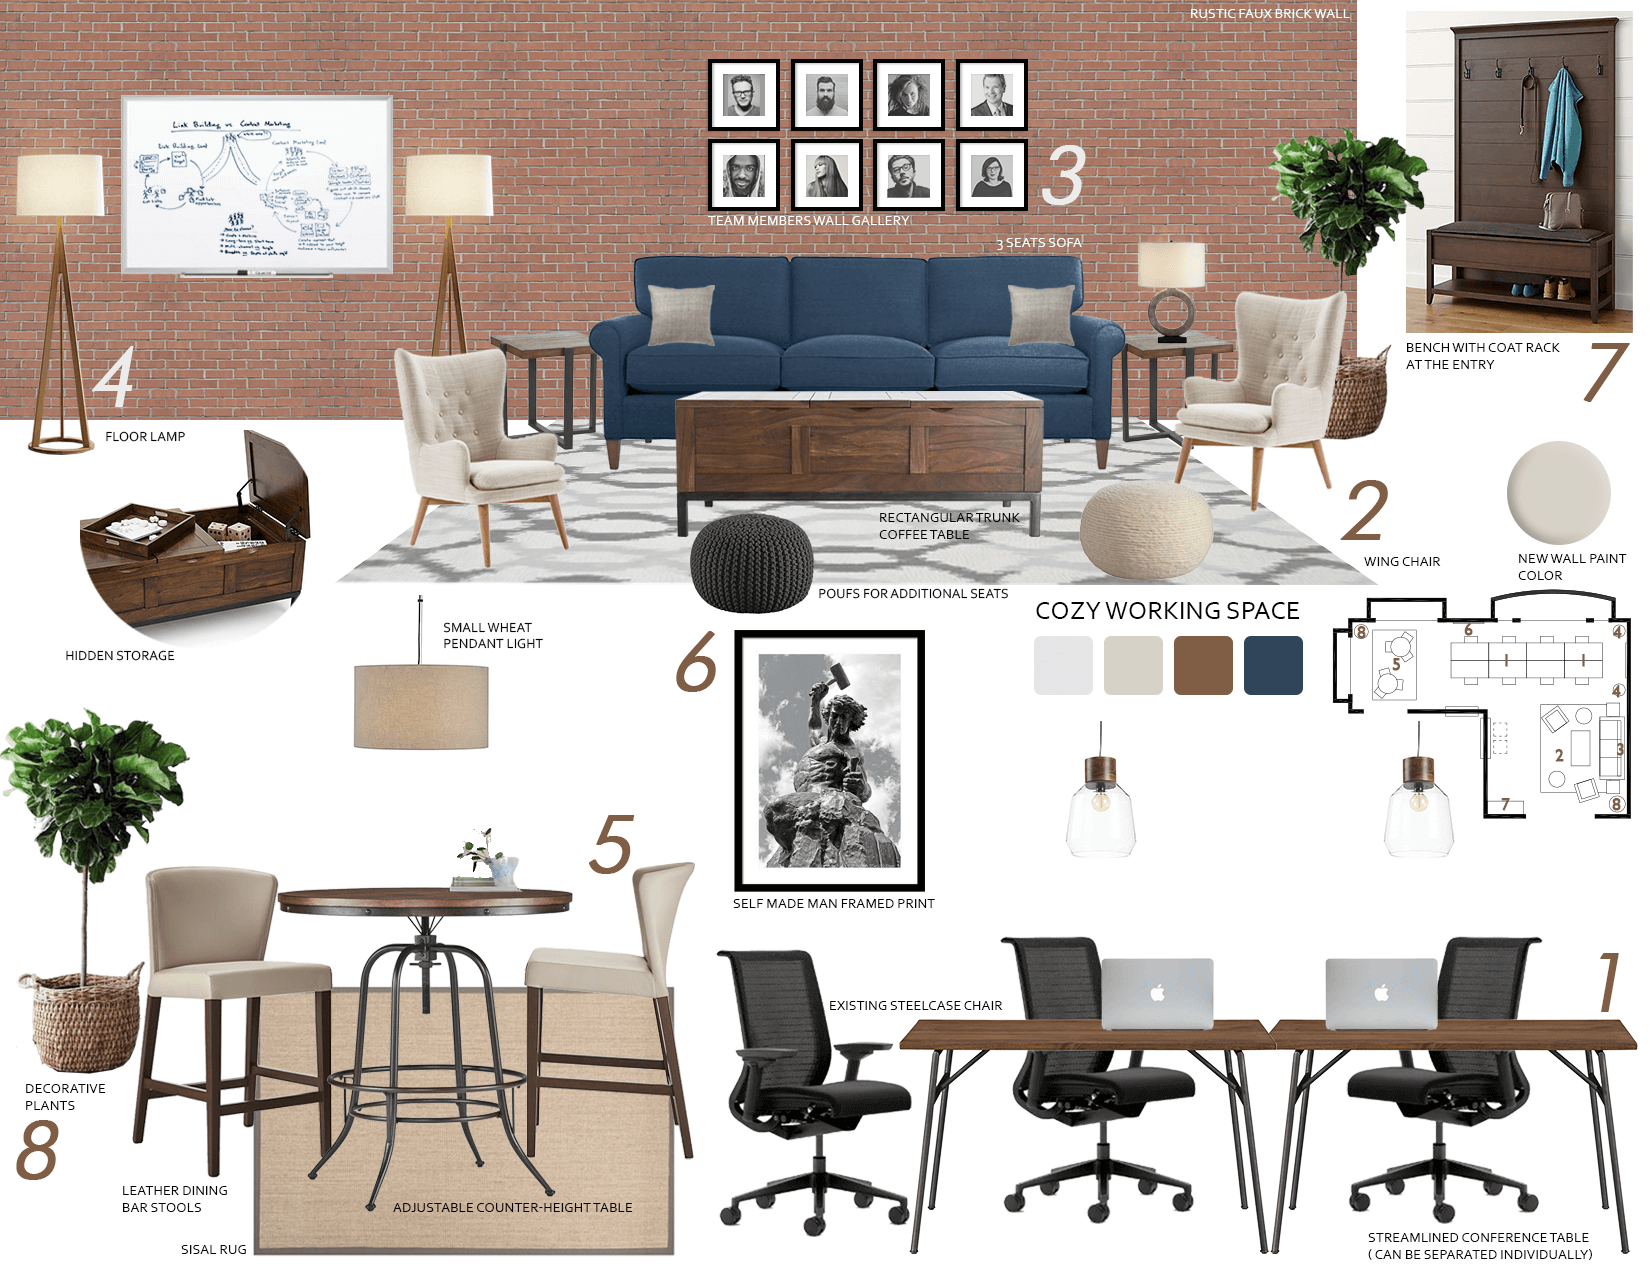 Modern_Office_design_moodboard